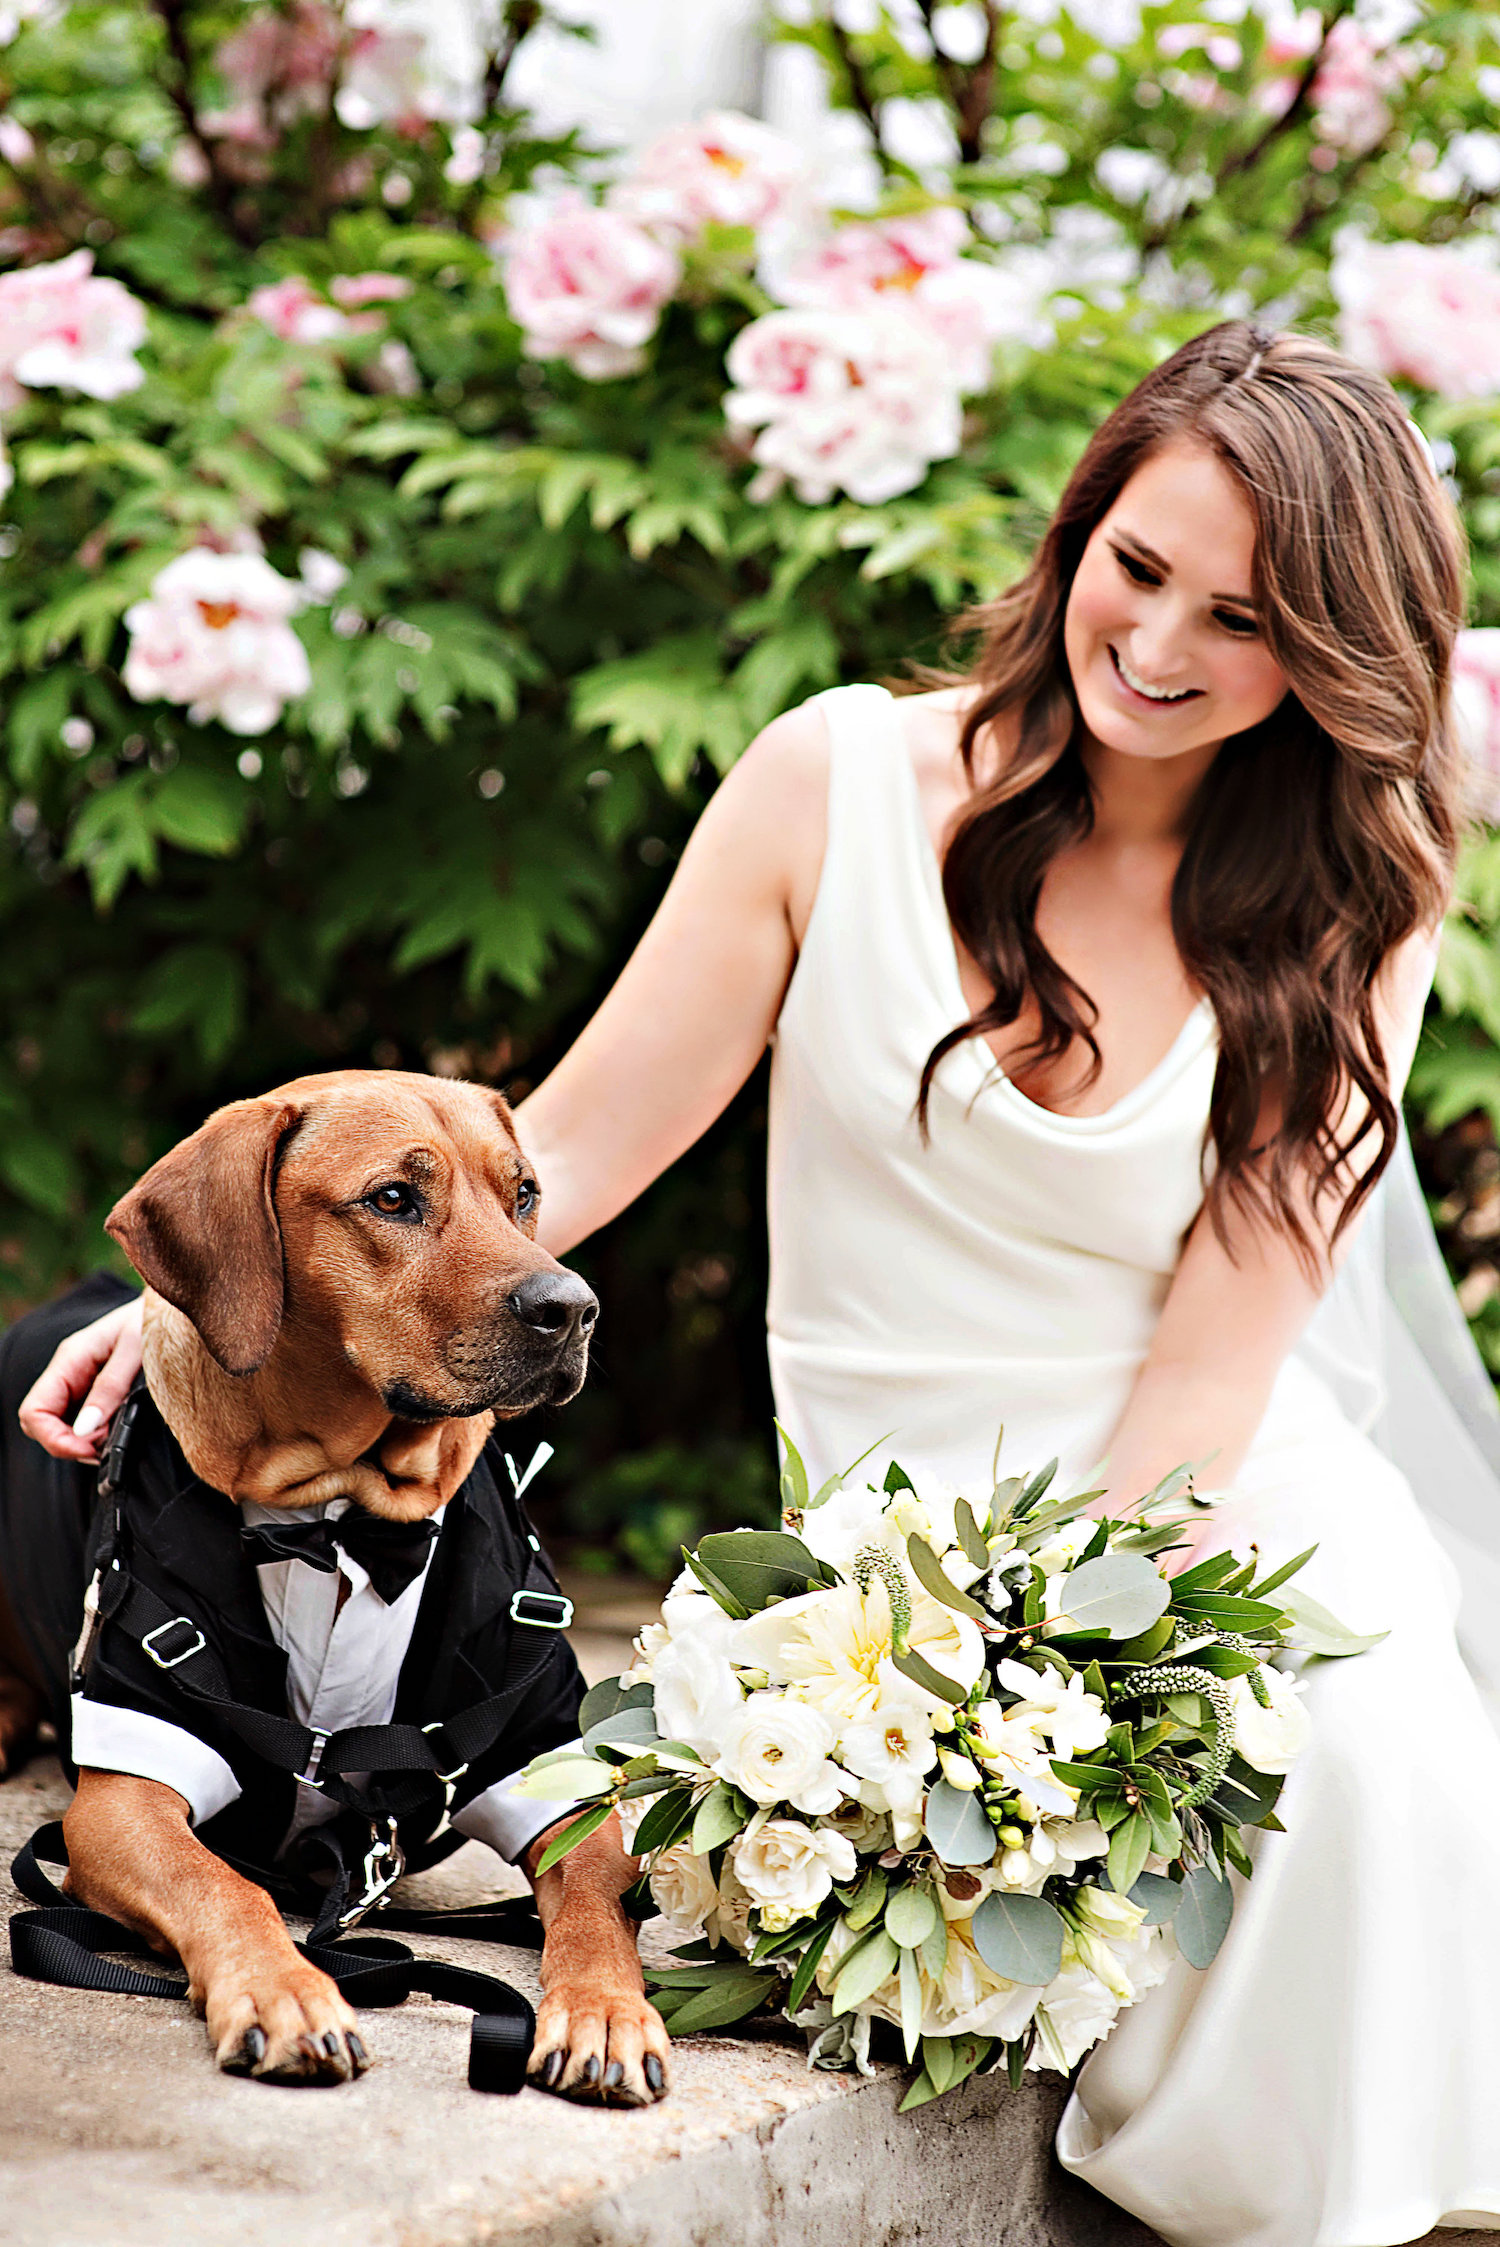 Kayla Plochan and her dog. Photographed by the Photography Smiths.